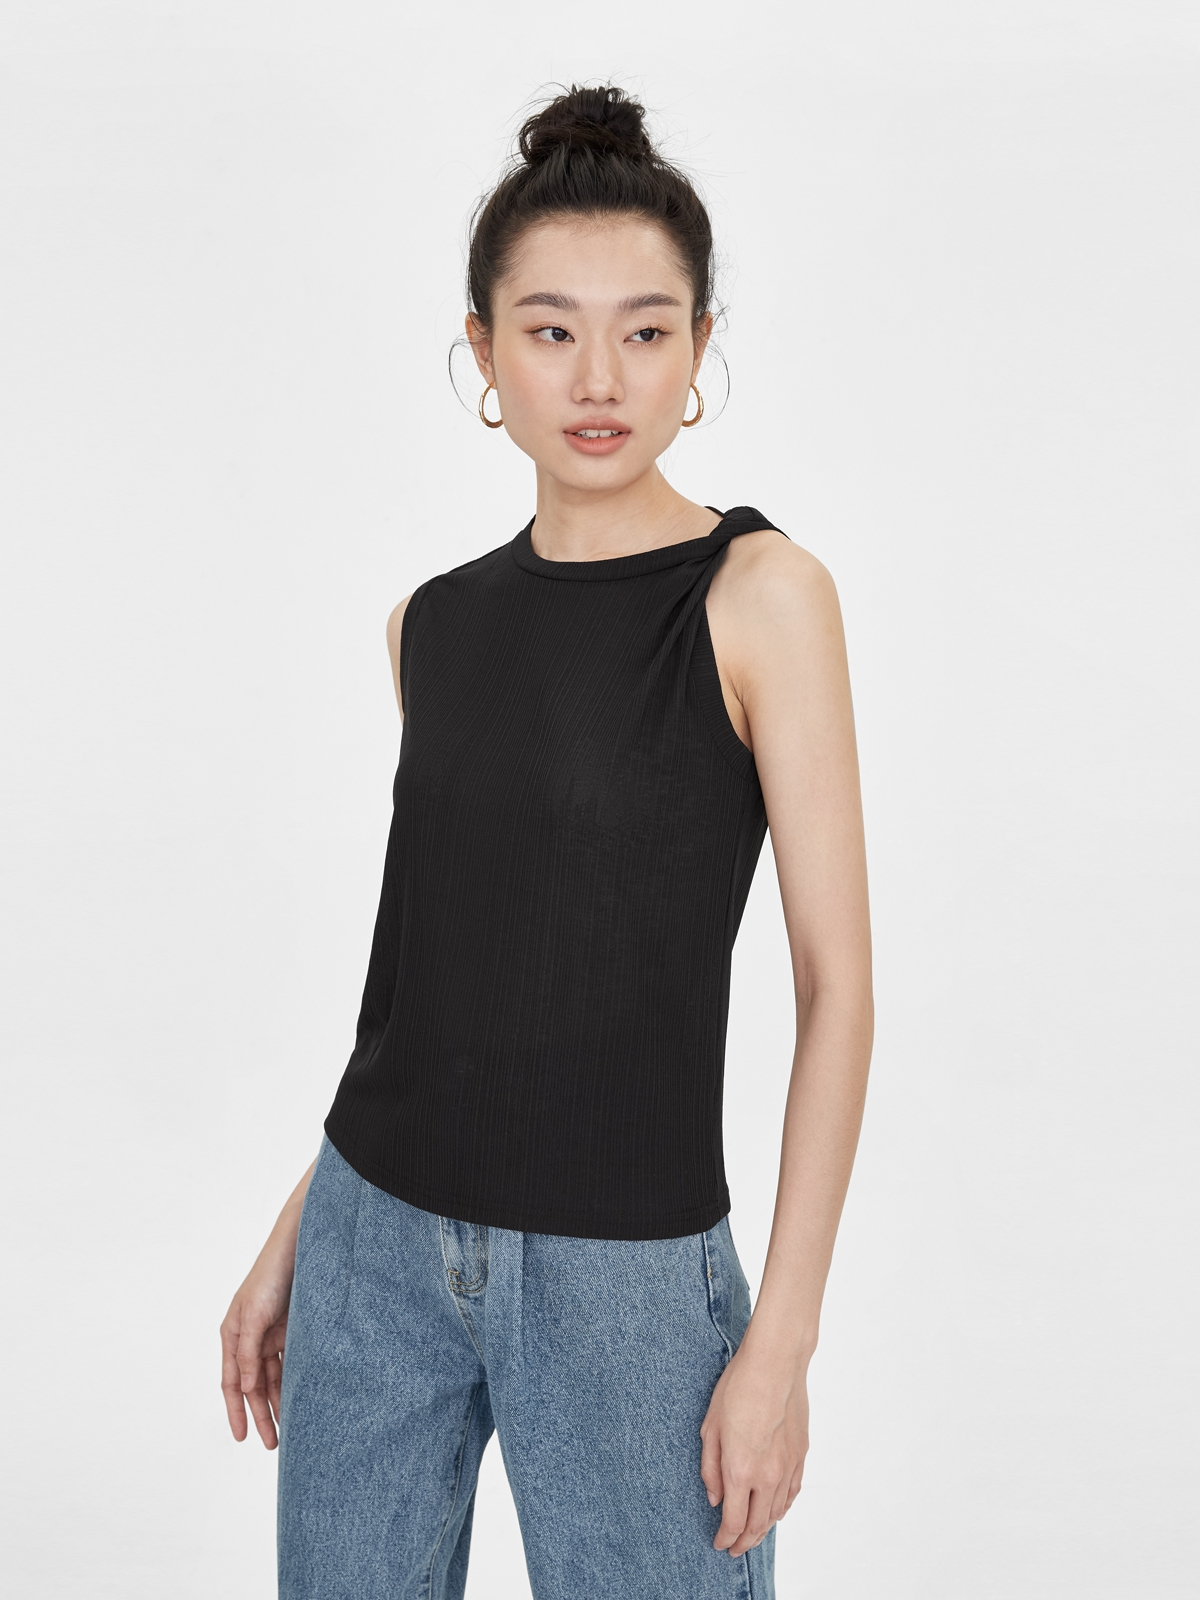 One Side Rolled Up Sleeveless Top Black